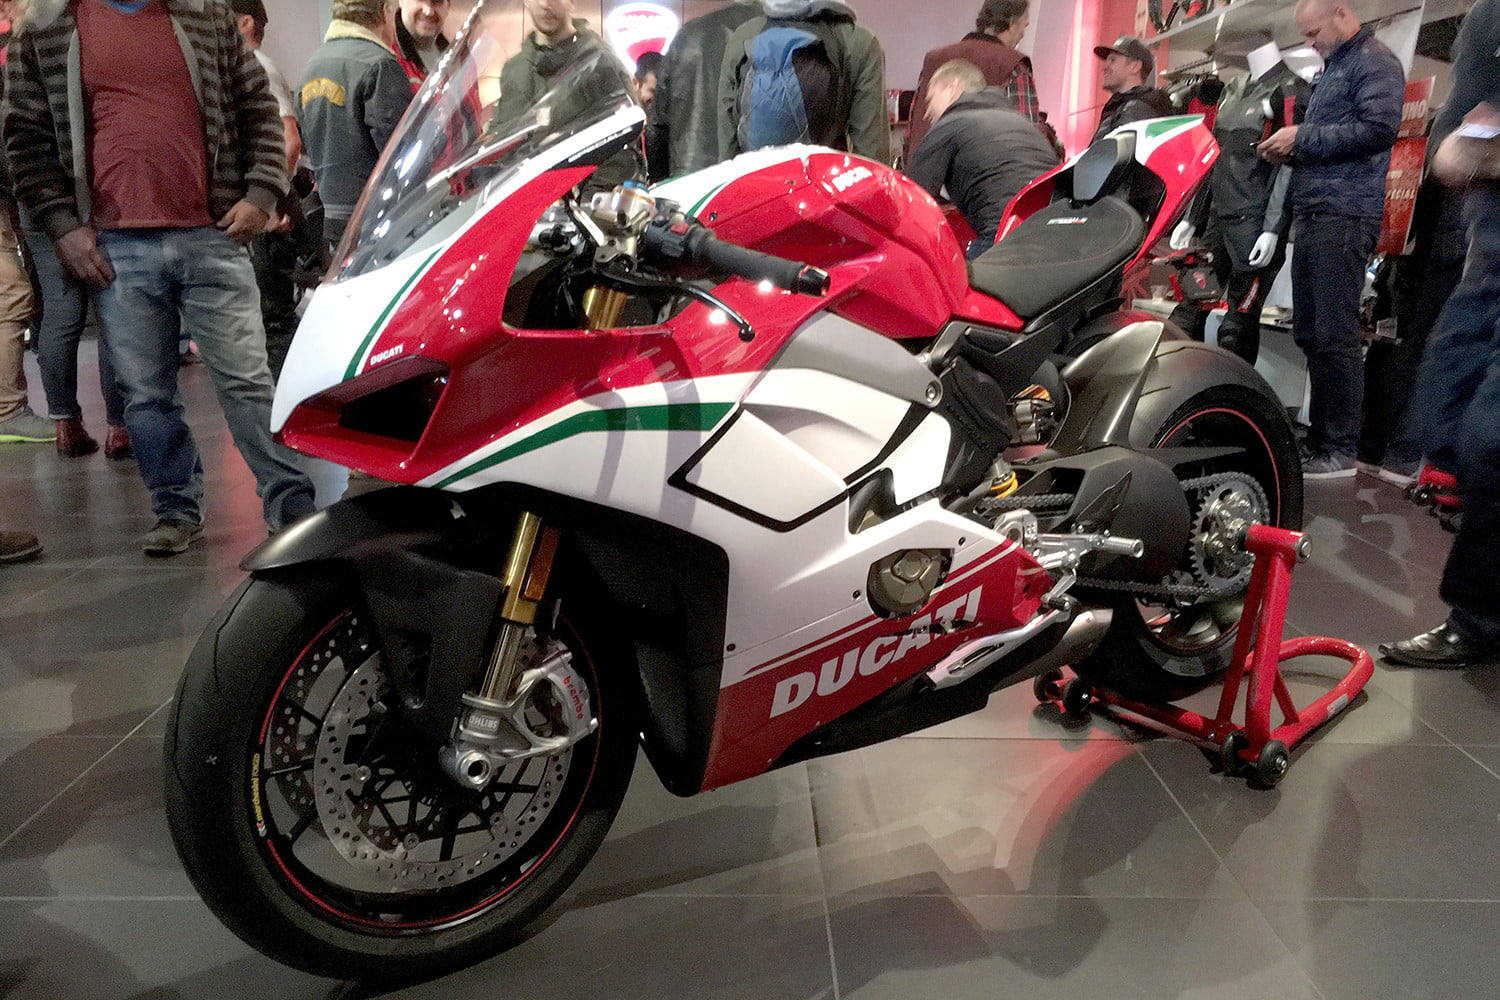 ducati 2018 motorcycle preview panigale v4 speciale full1